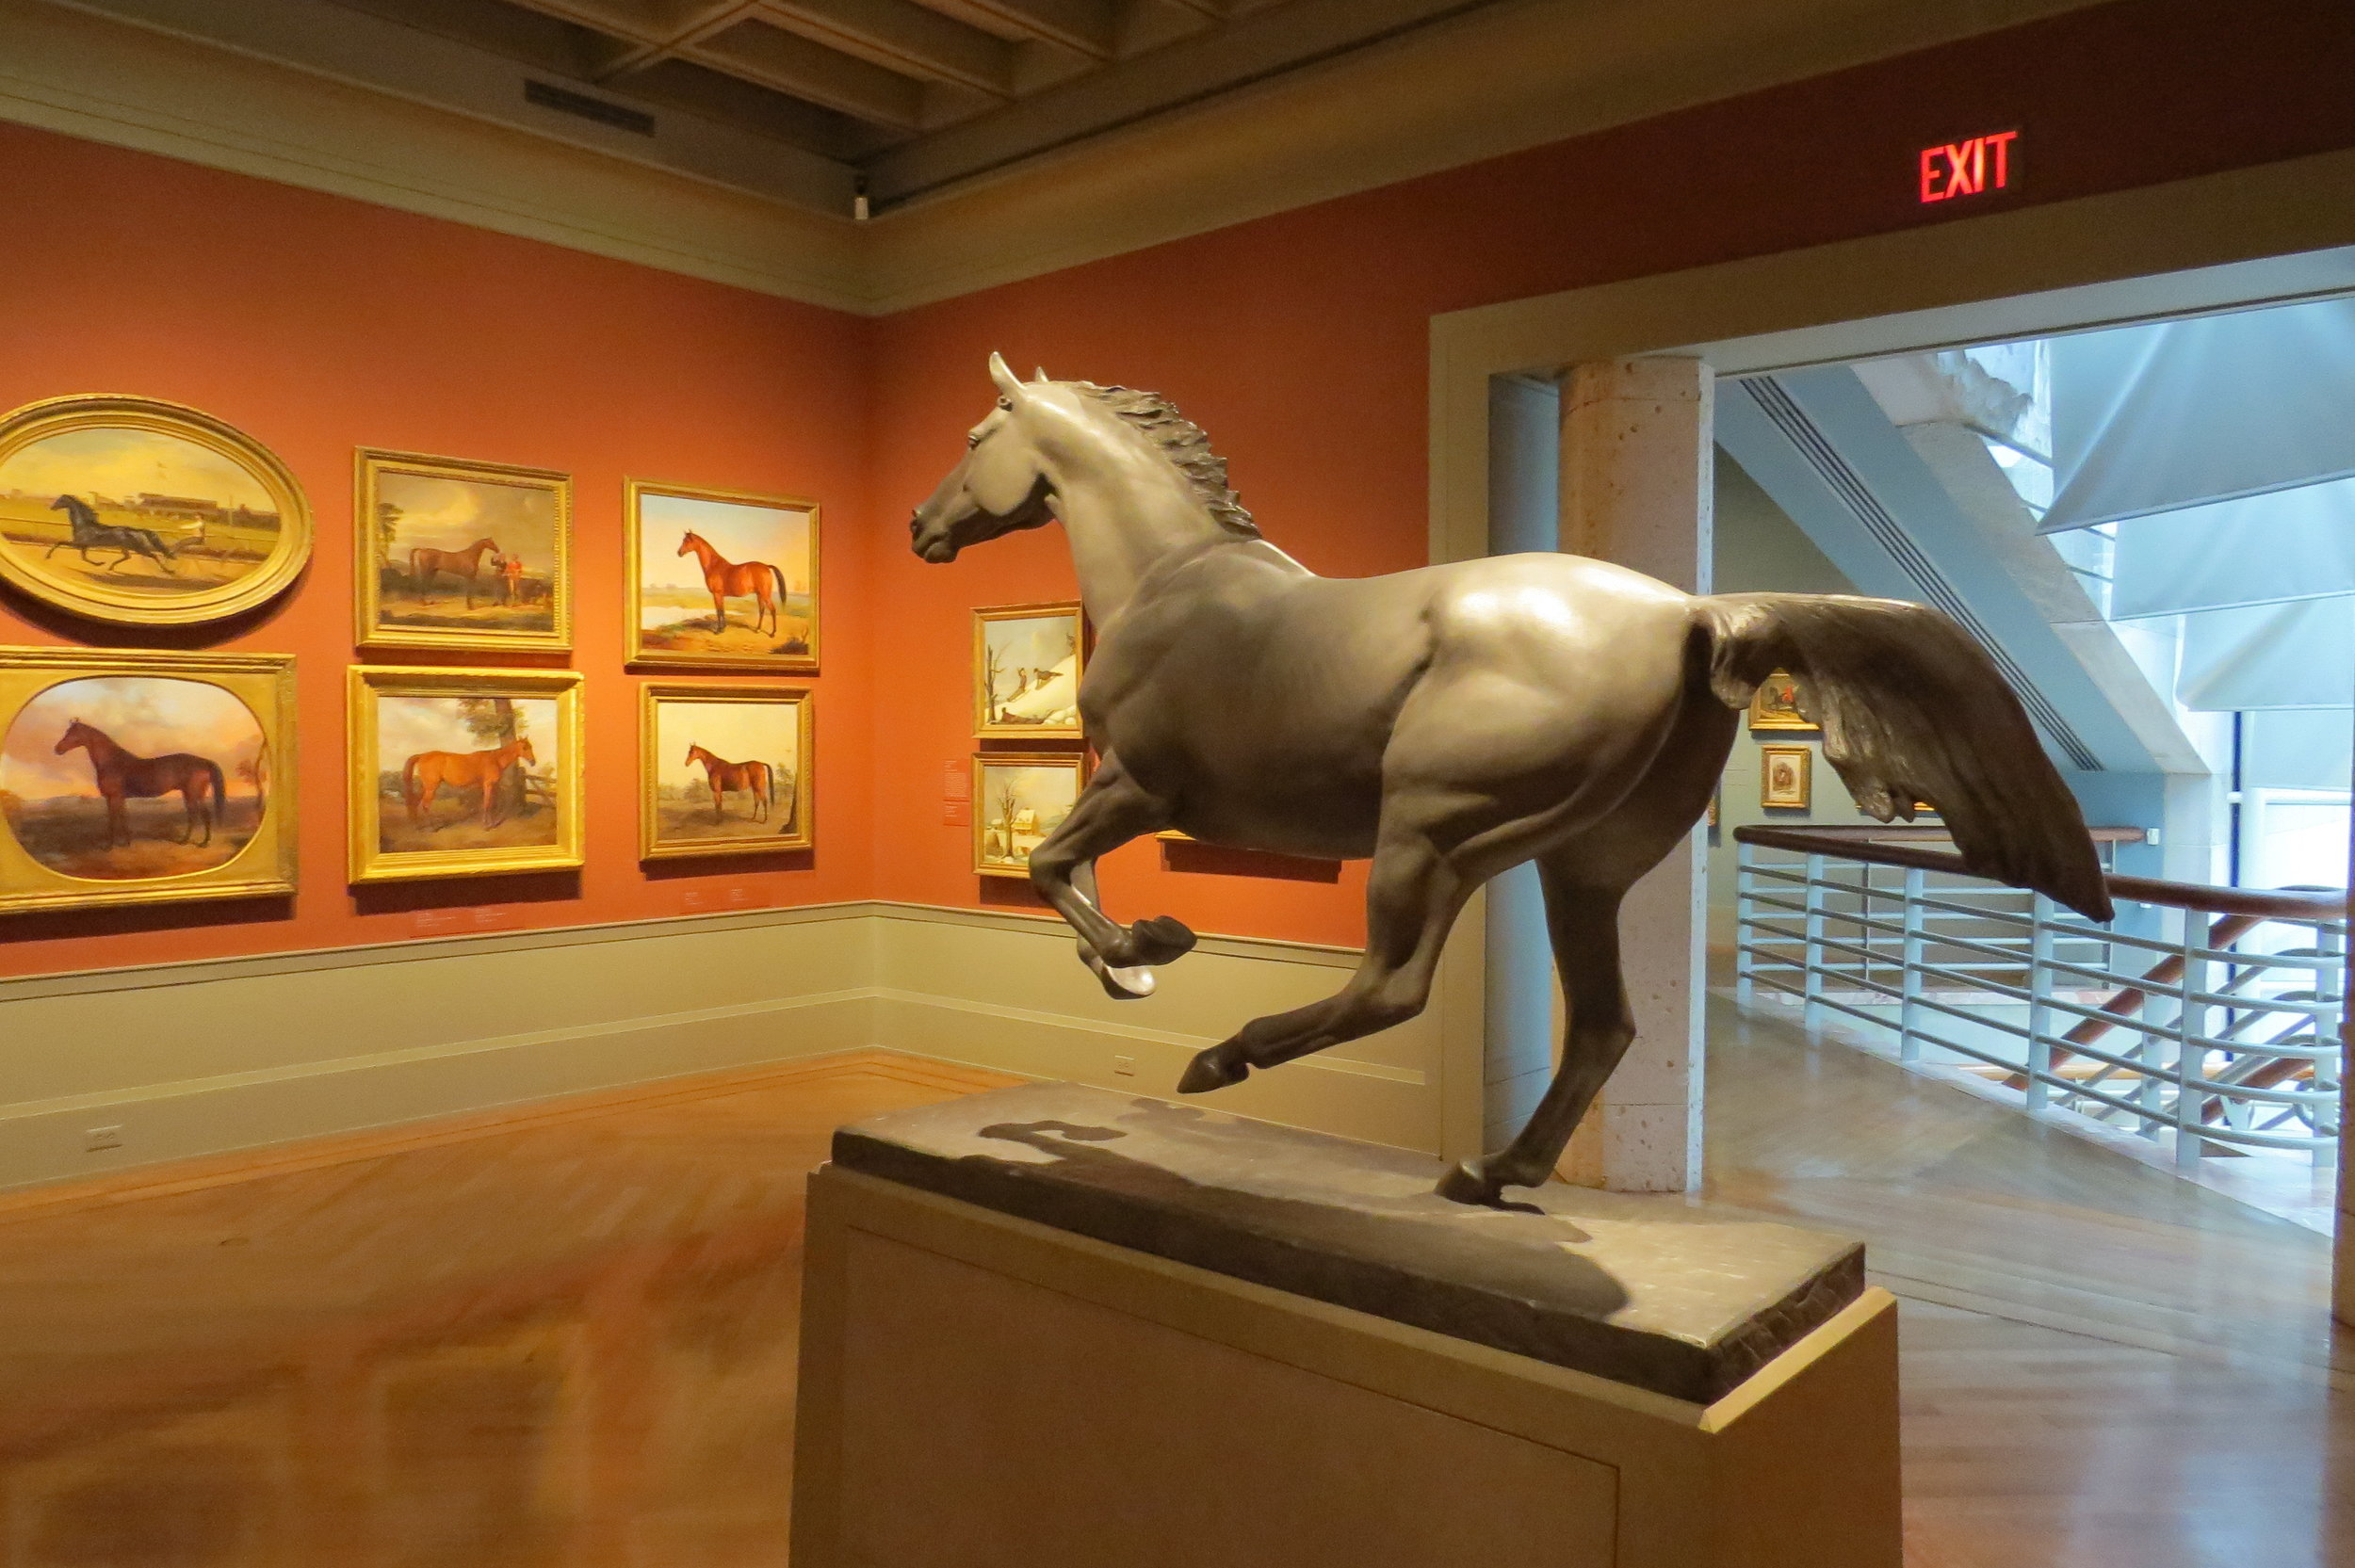 Interesting horse sculpture & paintings